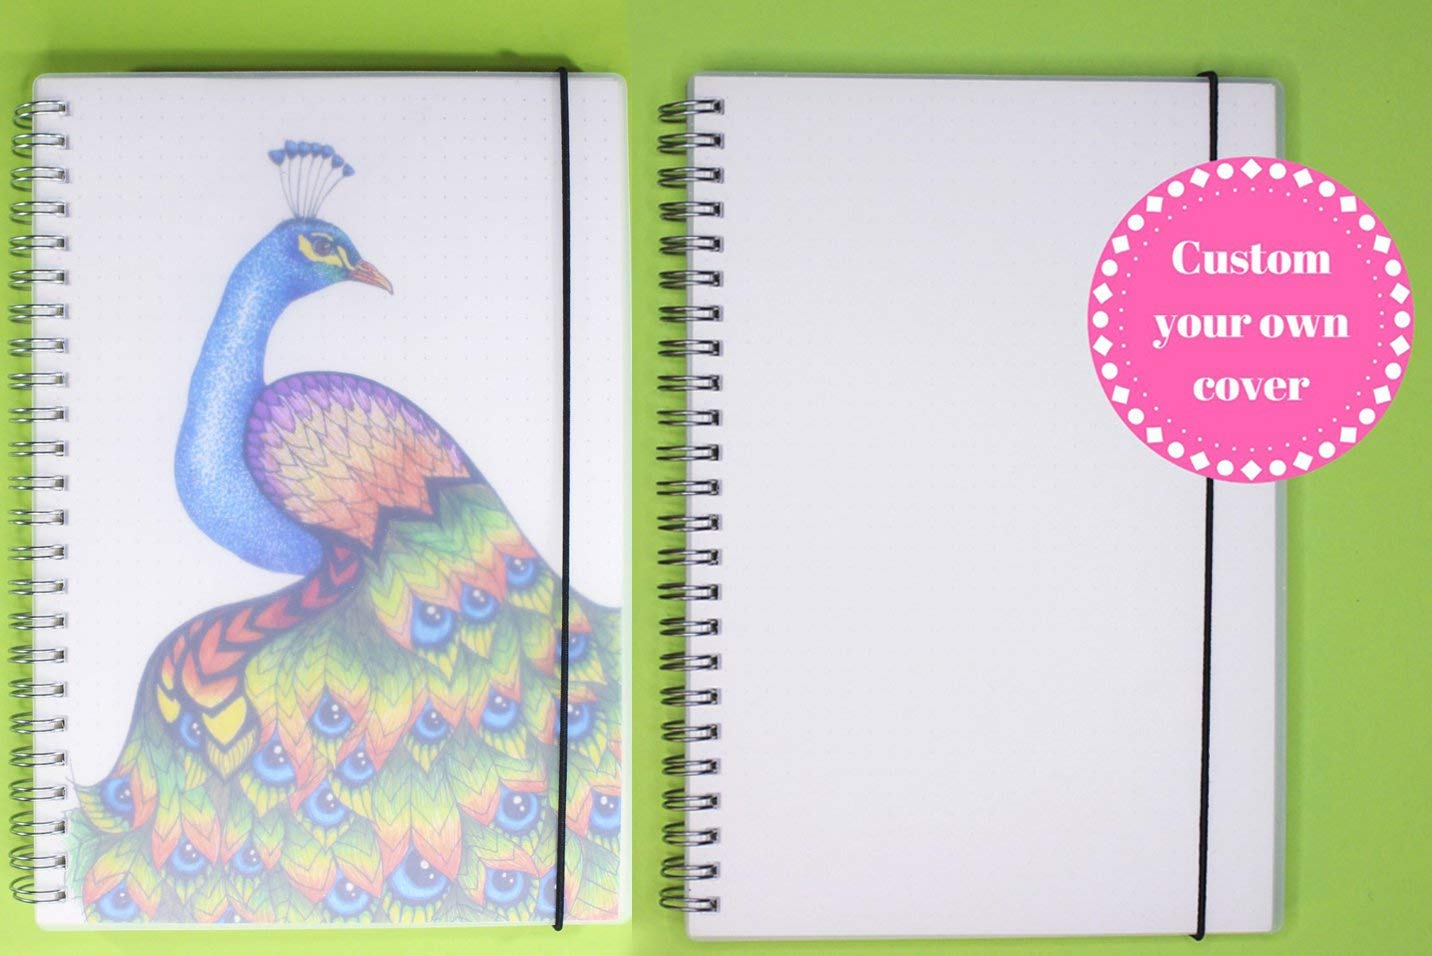 2-Pack Dotted Notebook - Spiral Bound Bullet Journals, A5 Size - 2 x 160 Thick Non-Bleed Dot Grid Pages